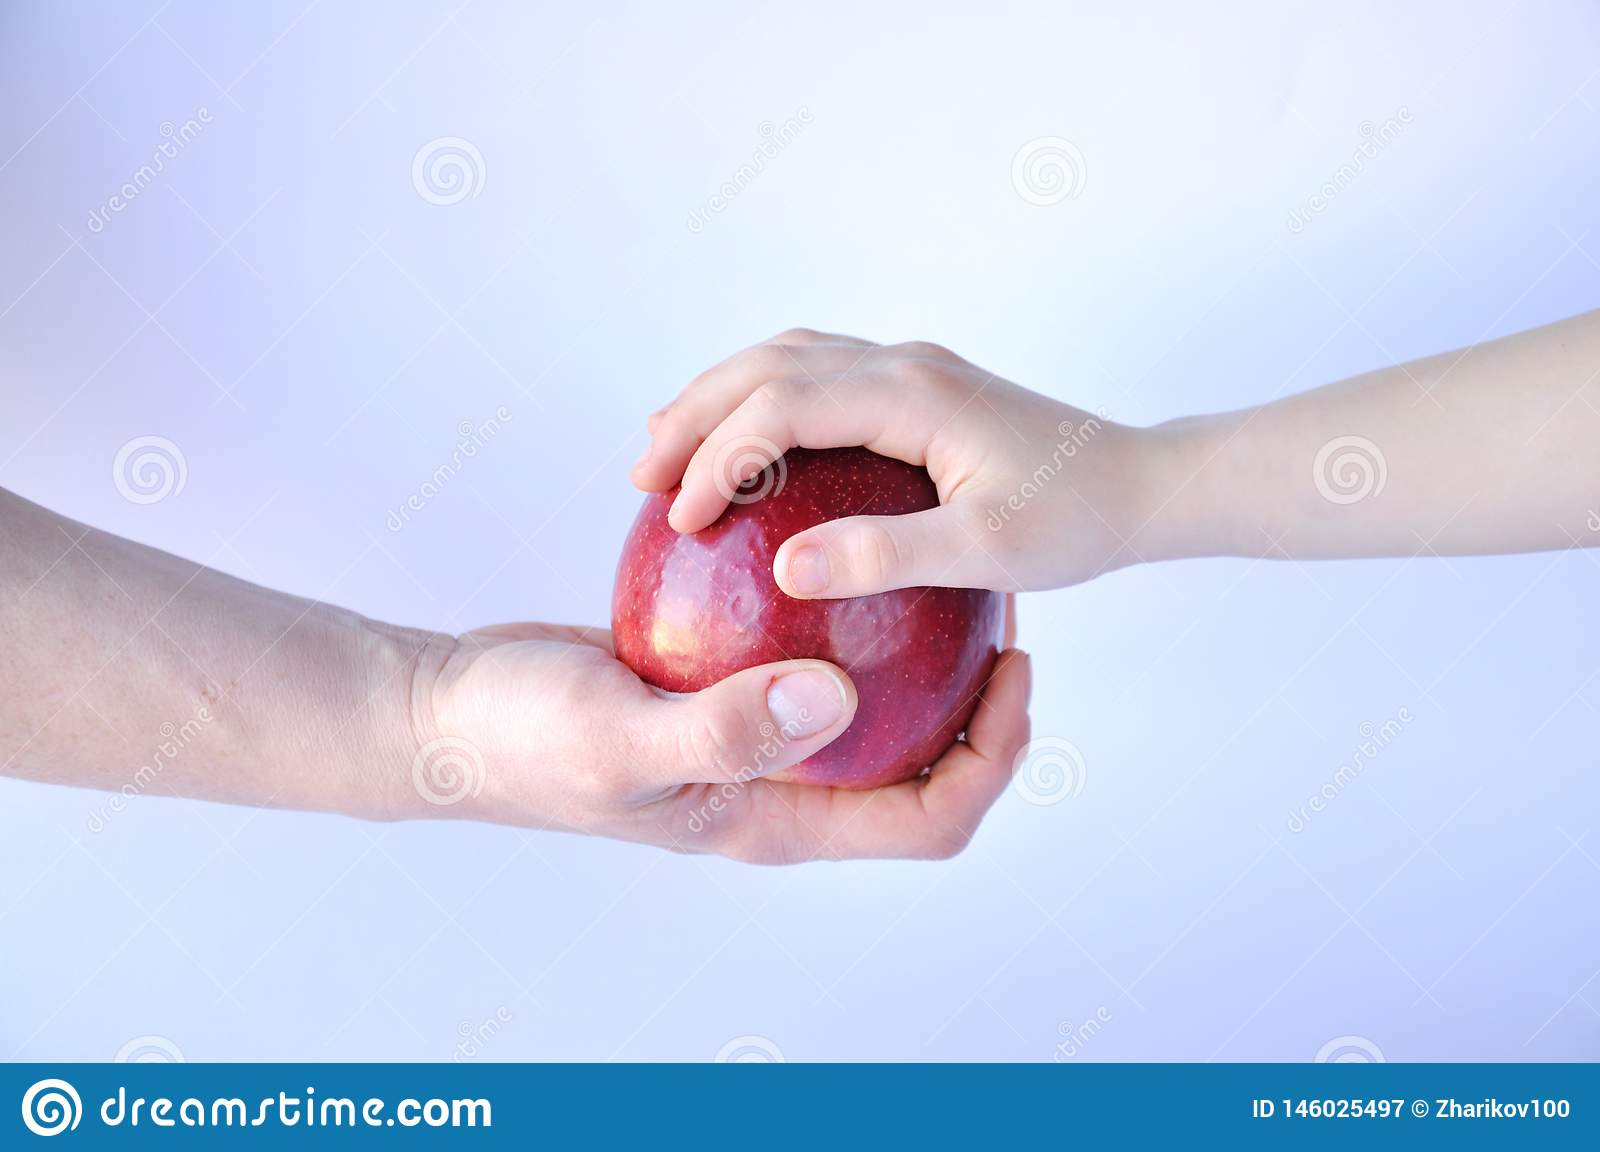 Hand gives a red apple to another hand